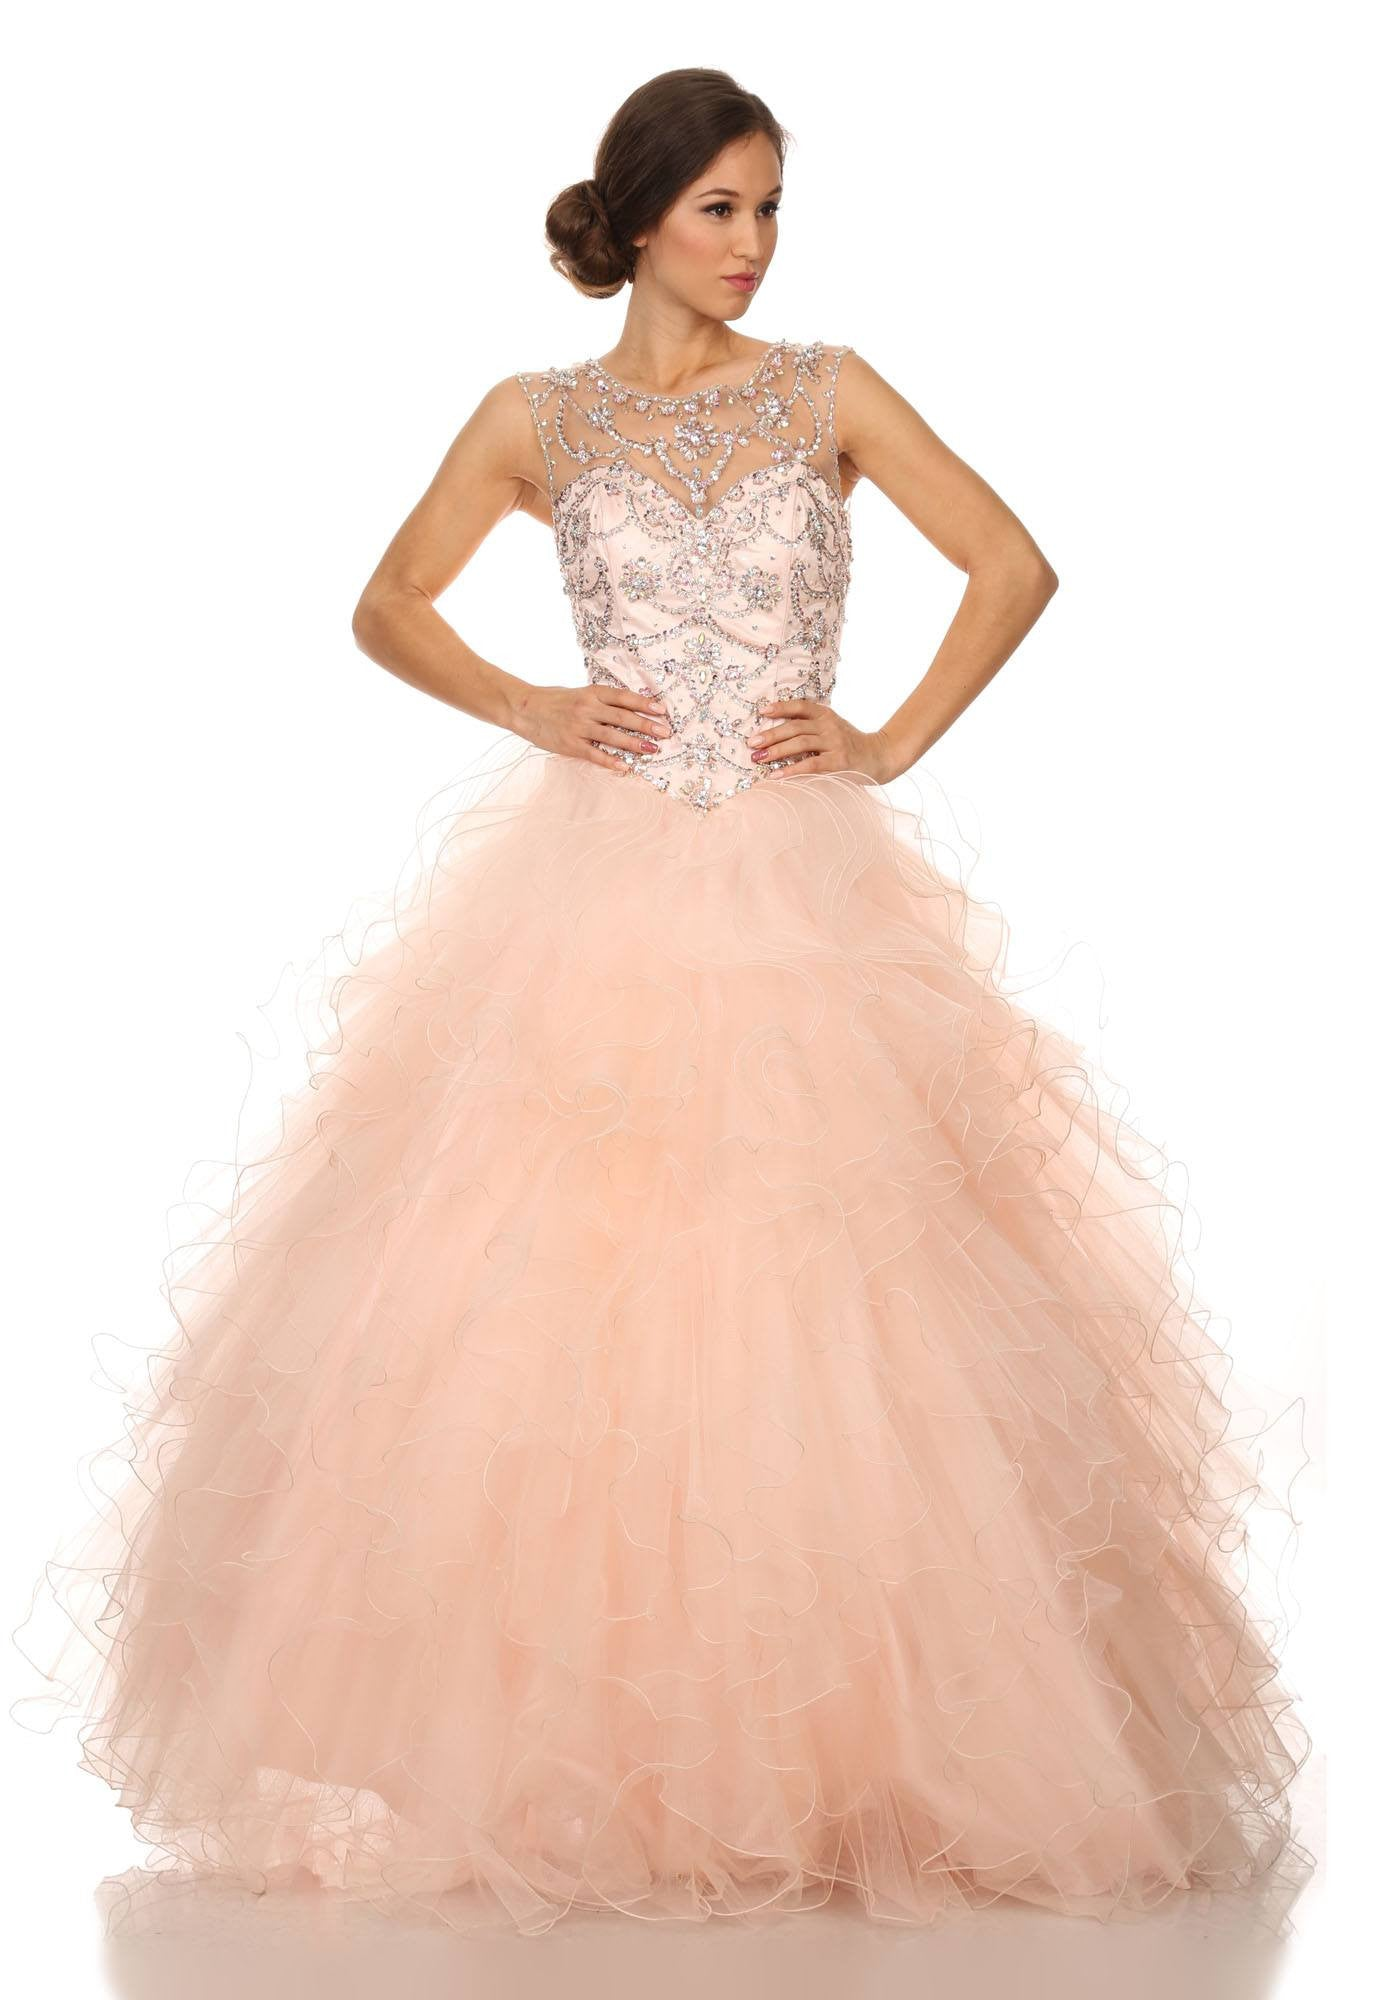 Illusion Beaded Bodice Ruffled Ball Gown Cut-Out Corset Back Blush ...